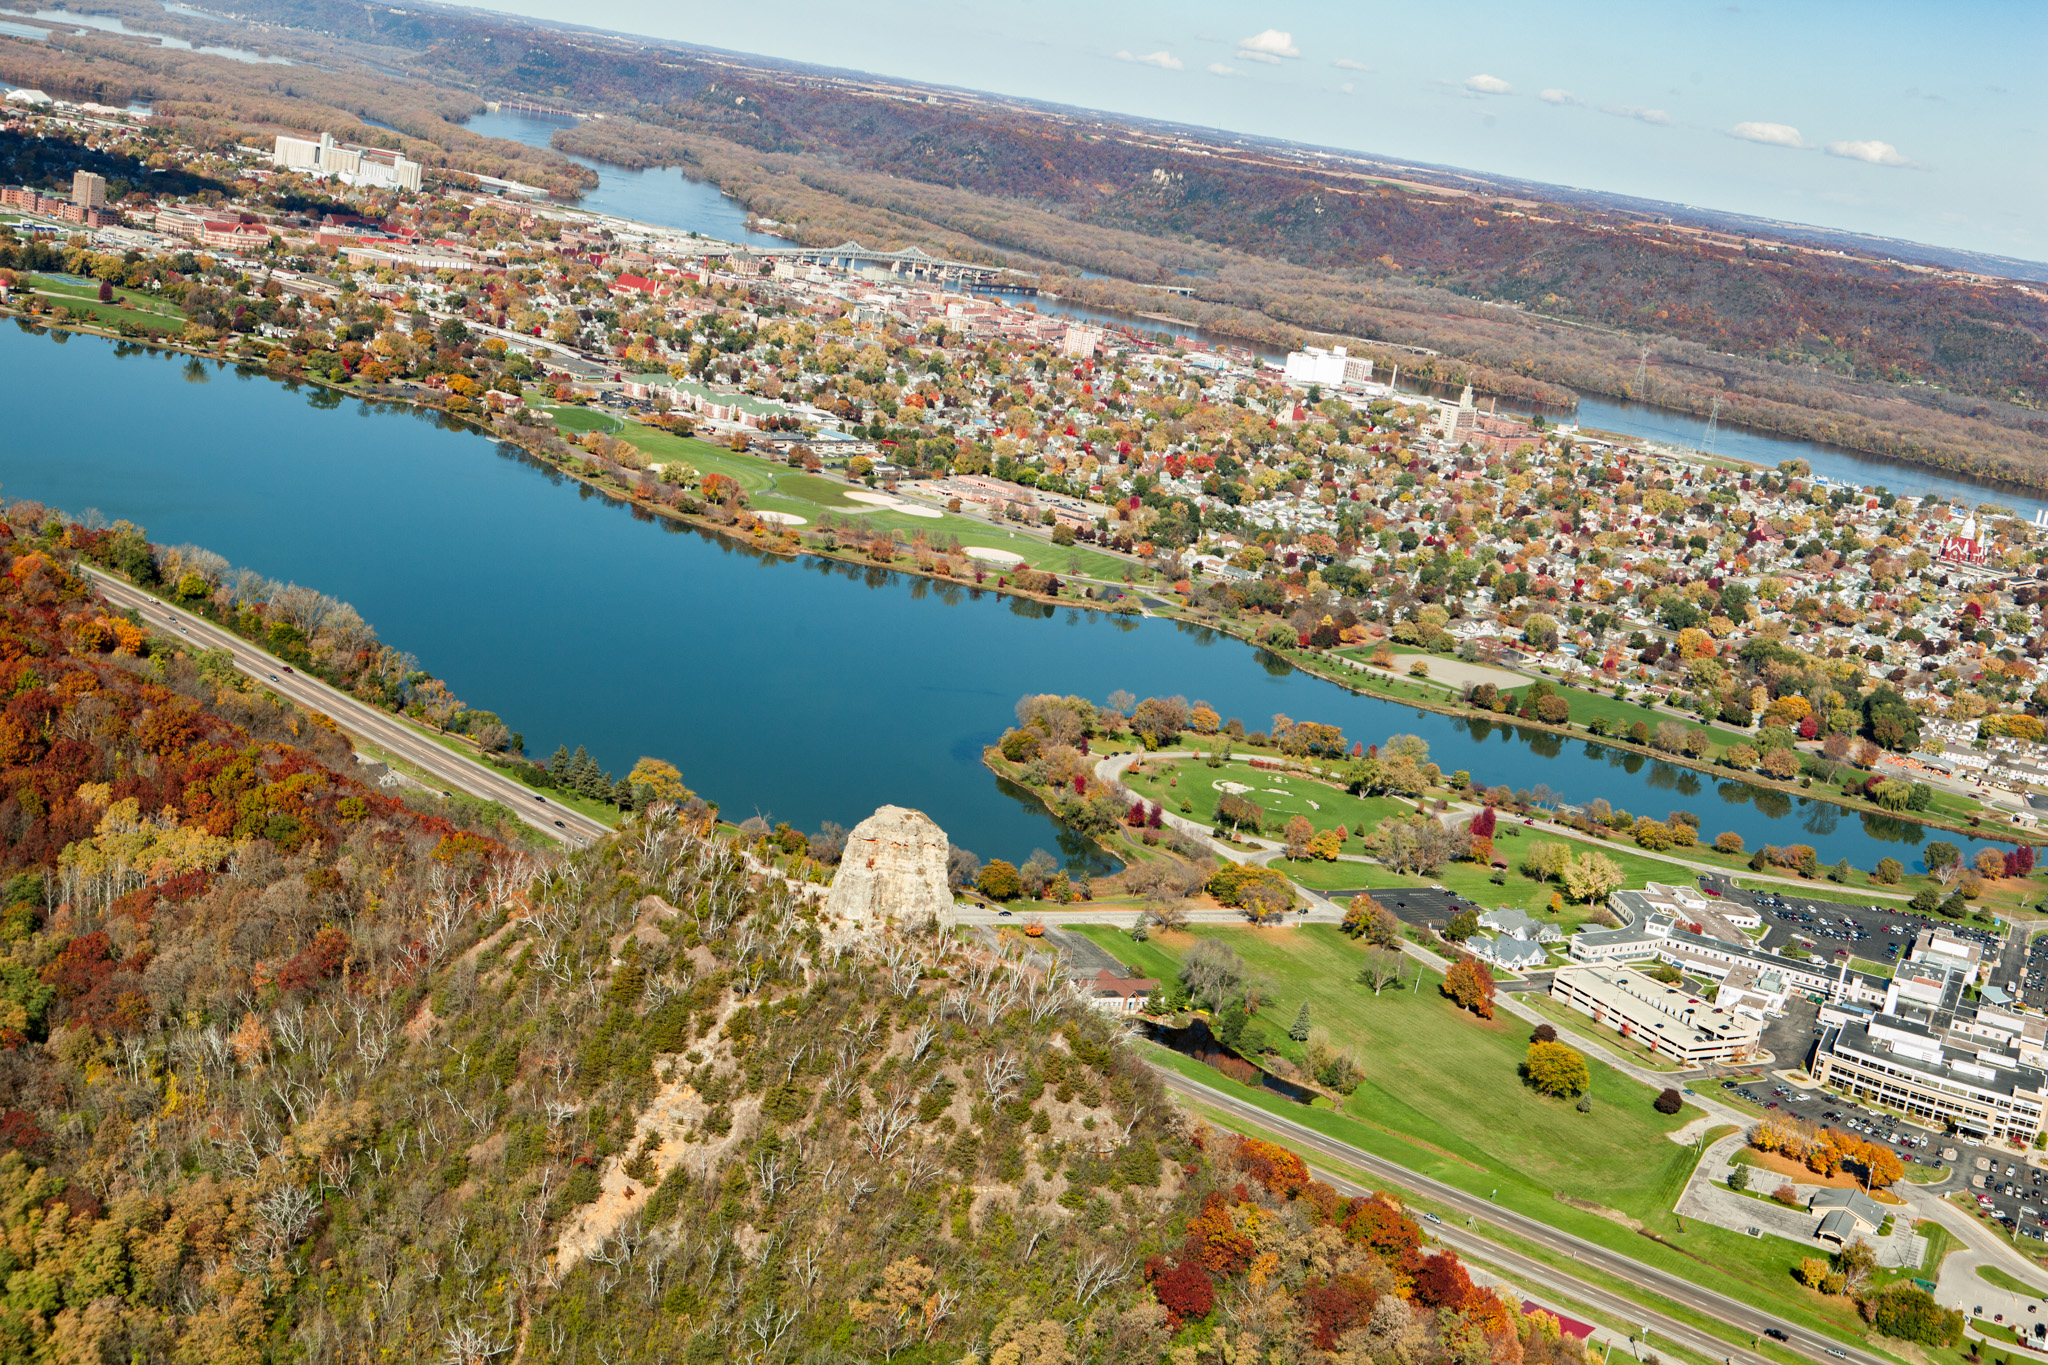 An aerial view of Winona shows Sugar Loaf rising high above the city